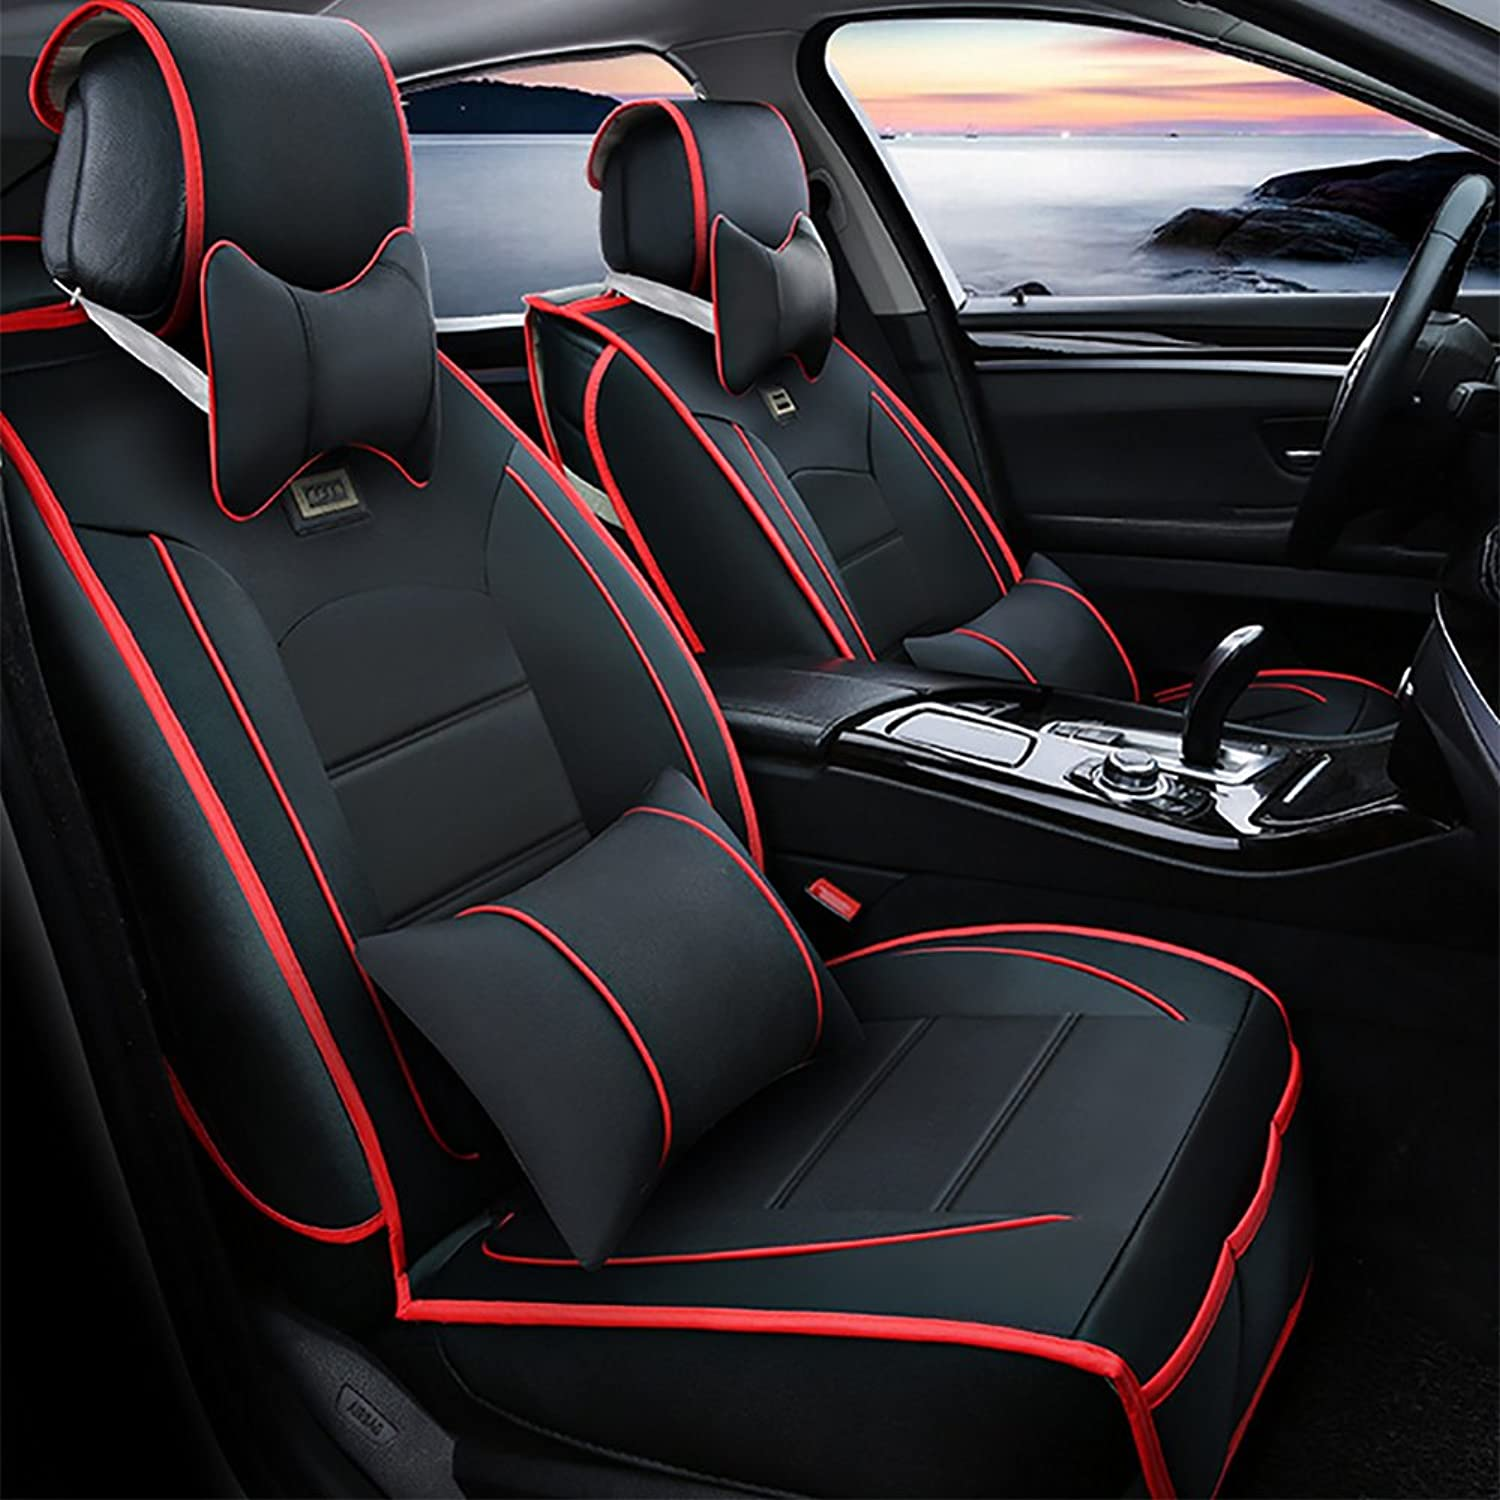 Universal Full Set Easy to Clean PU Leather Car Seat Cushions 5 Seats